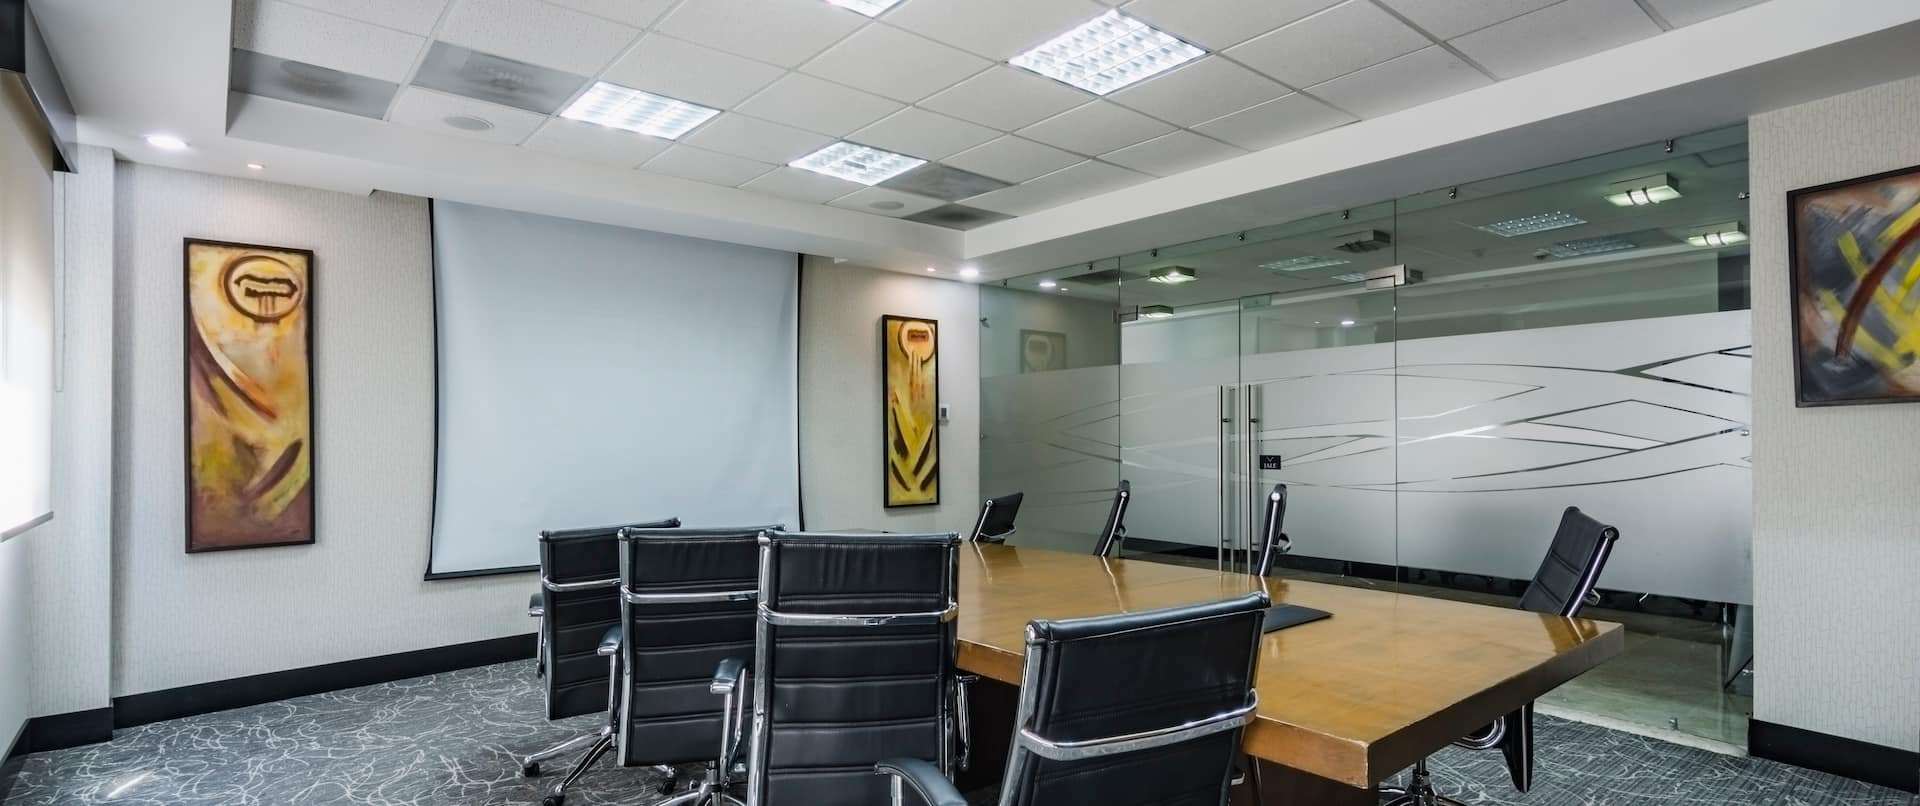 Meeting Room, conference space